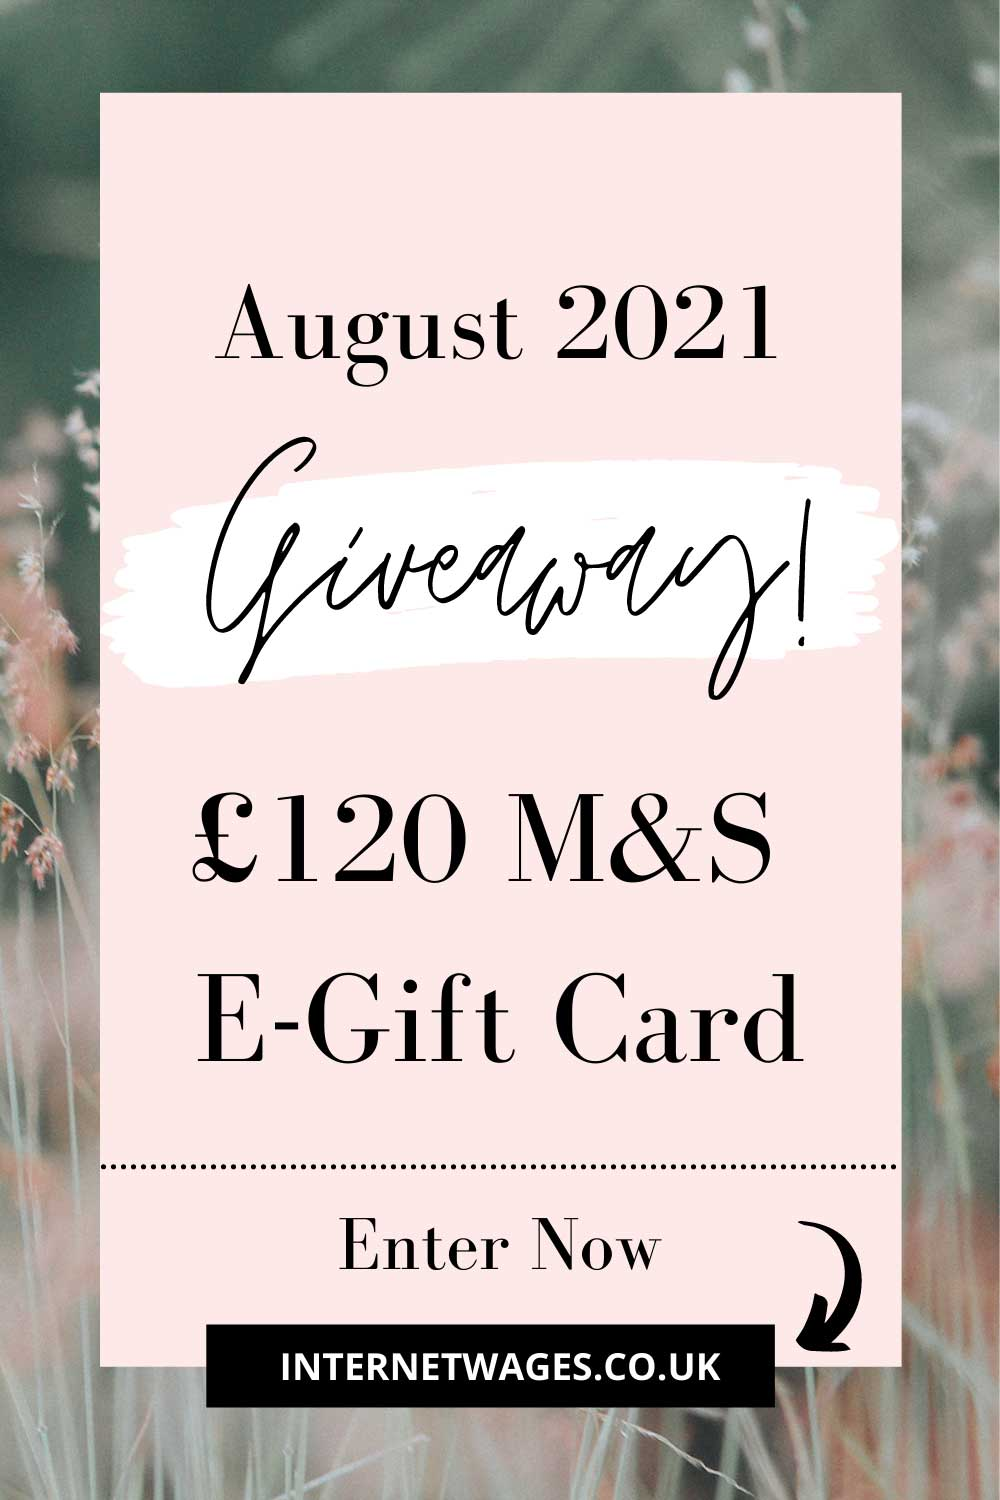 August 2021 UK Giveaway. Win an M&S Gift Card.